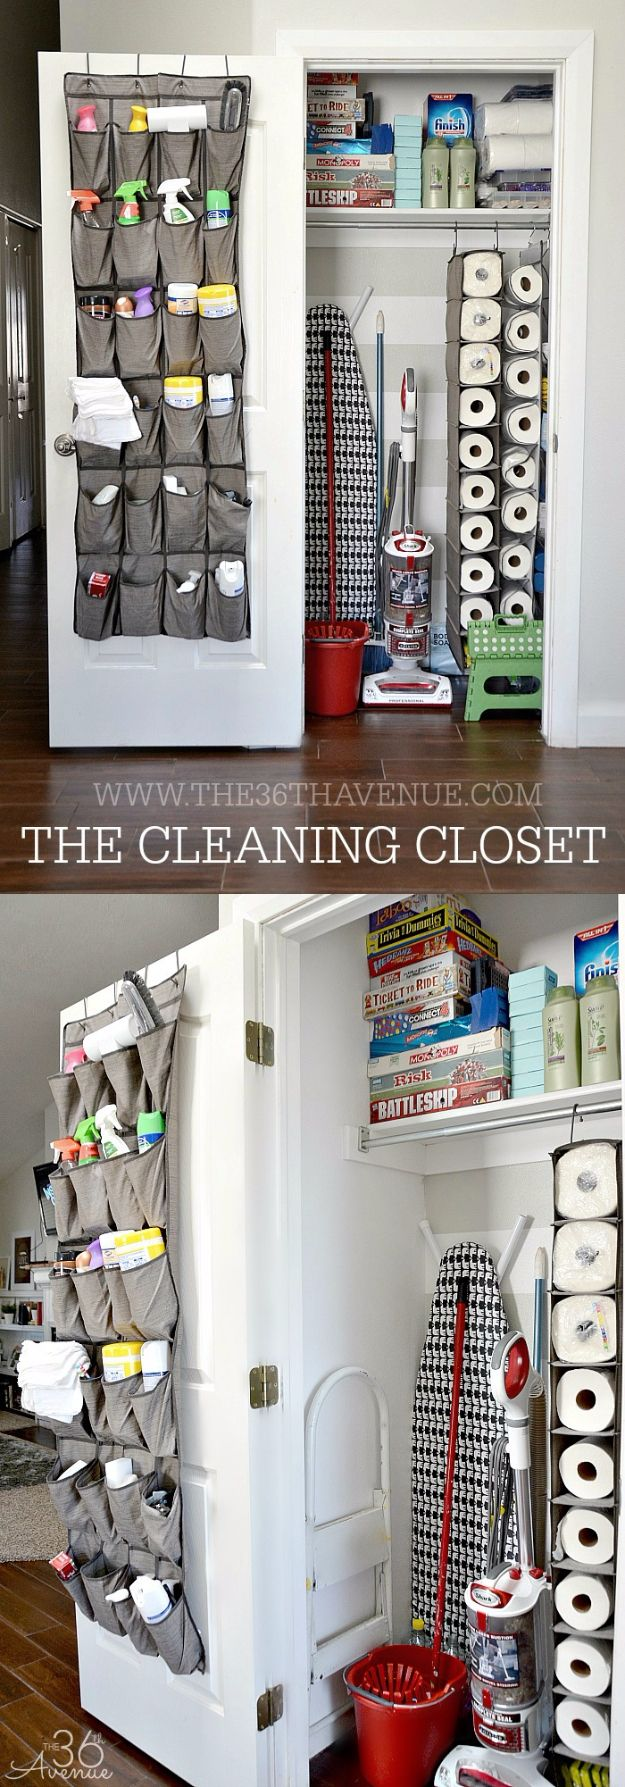 Best Organizing Ideas For The New Year   DIY Cleaning Closet Organization    Resolutions For Getting